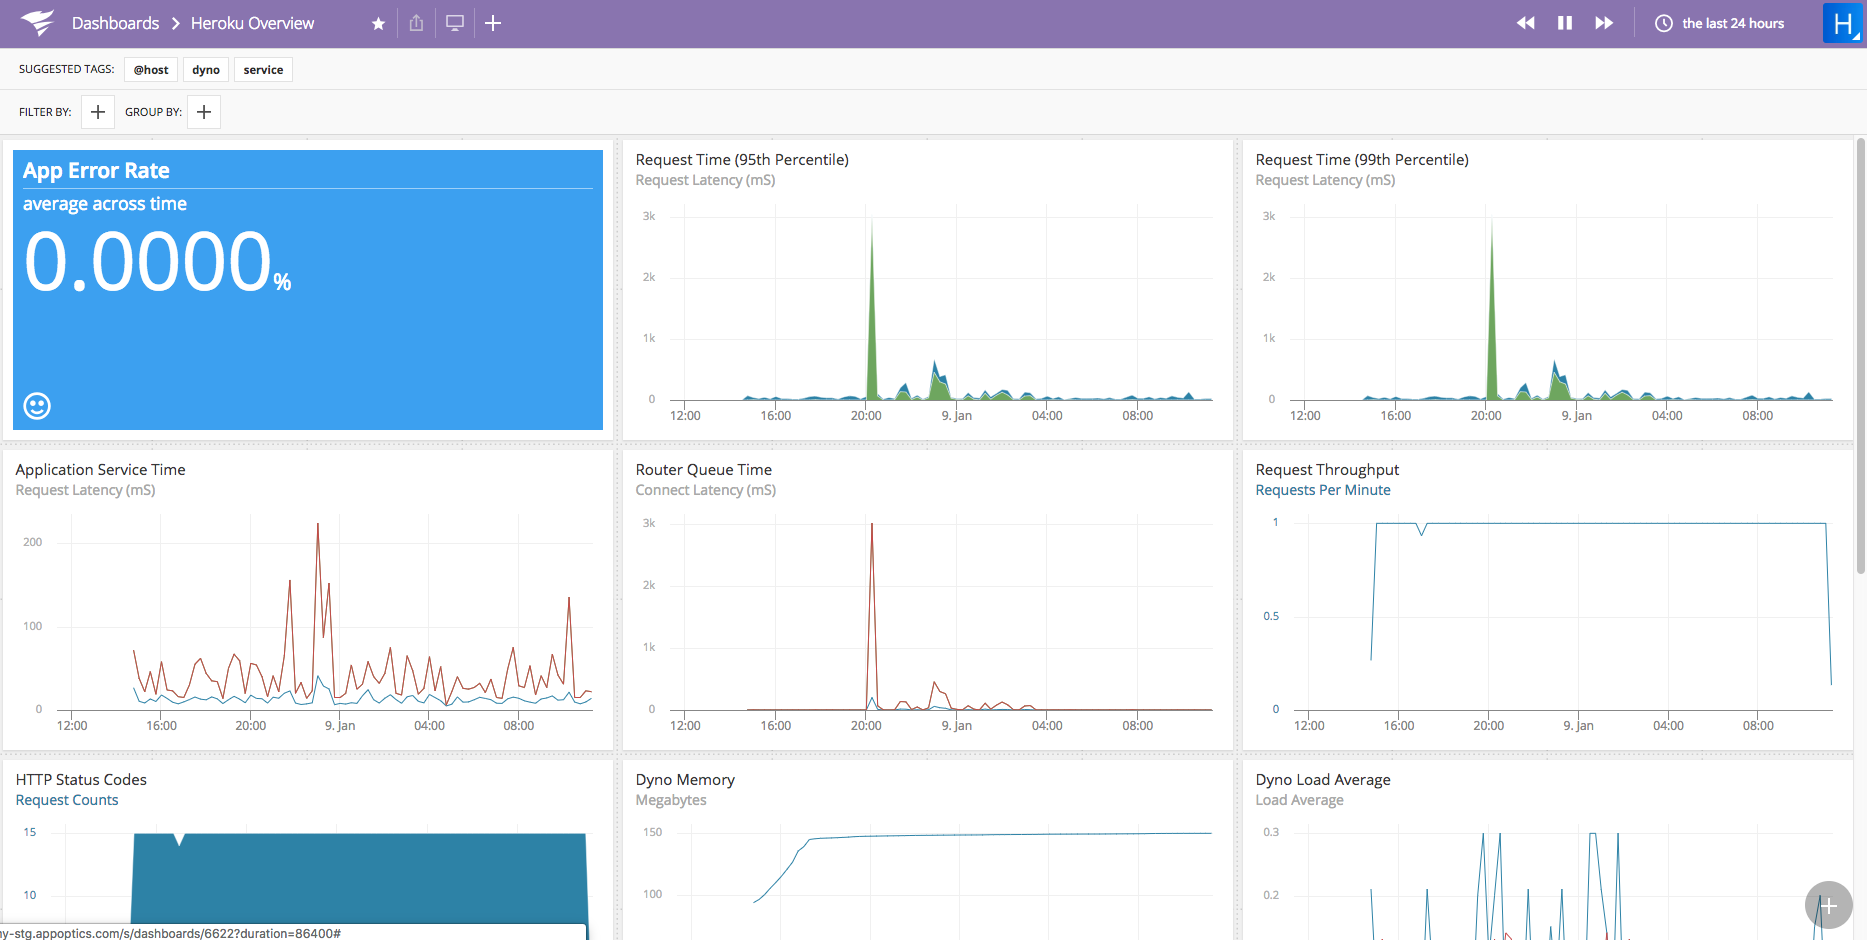 ../../../_images/heroku_overview_dashboard.png